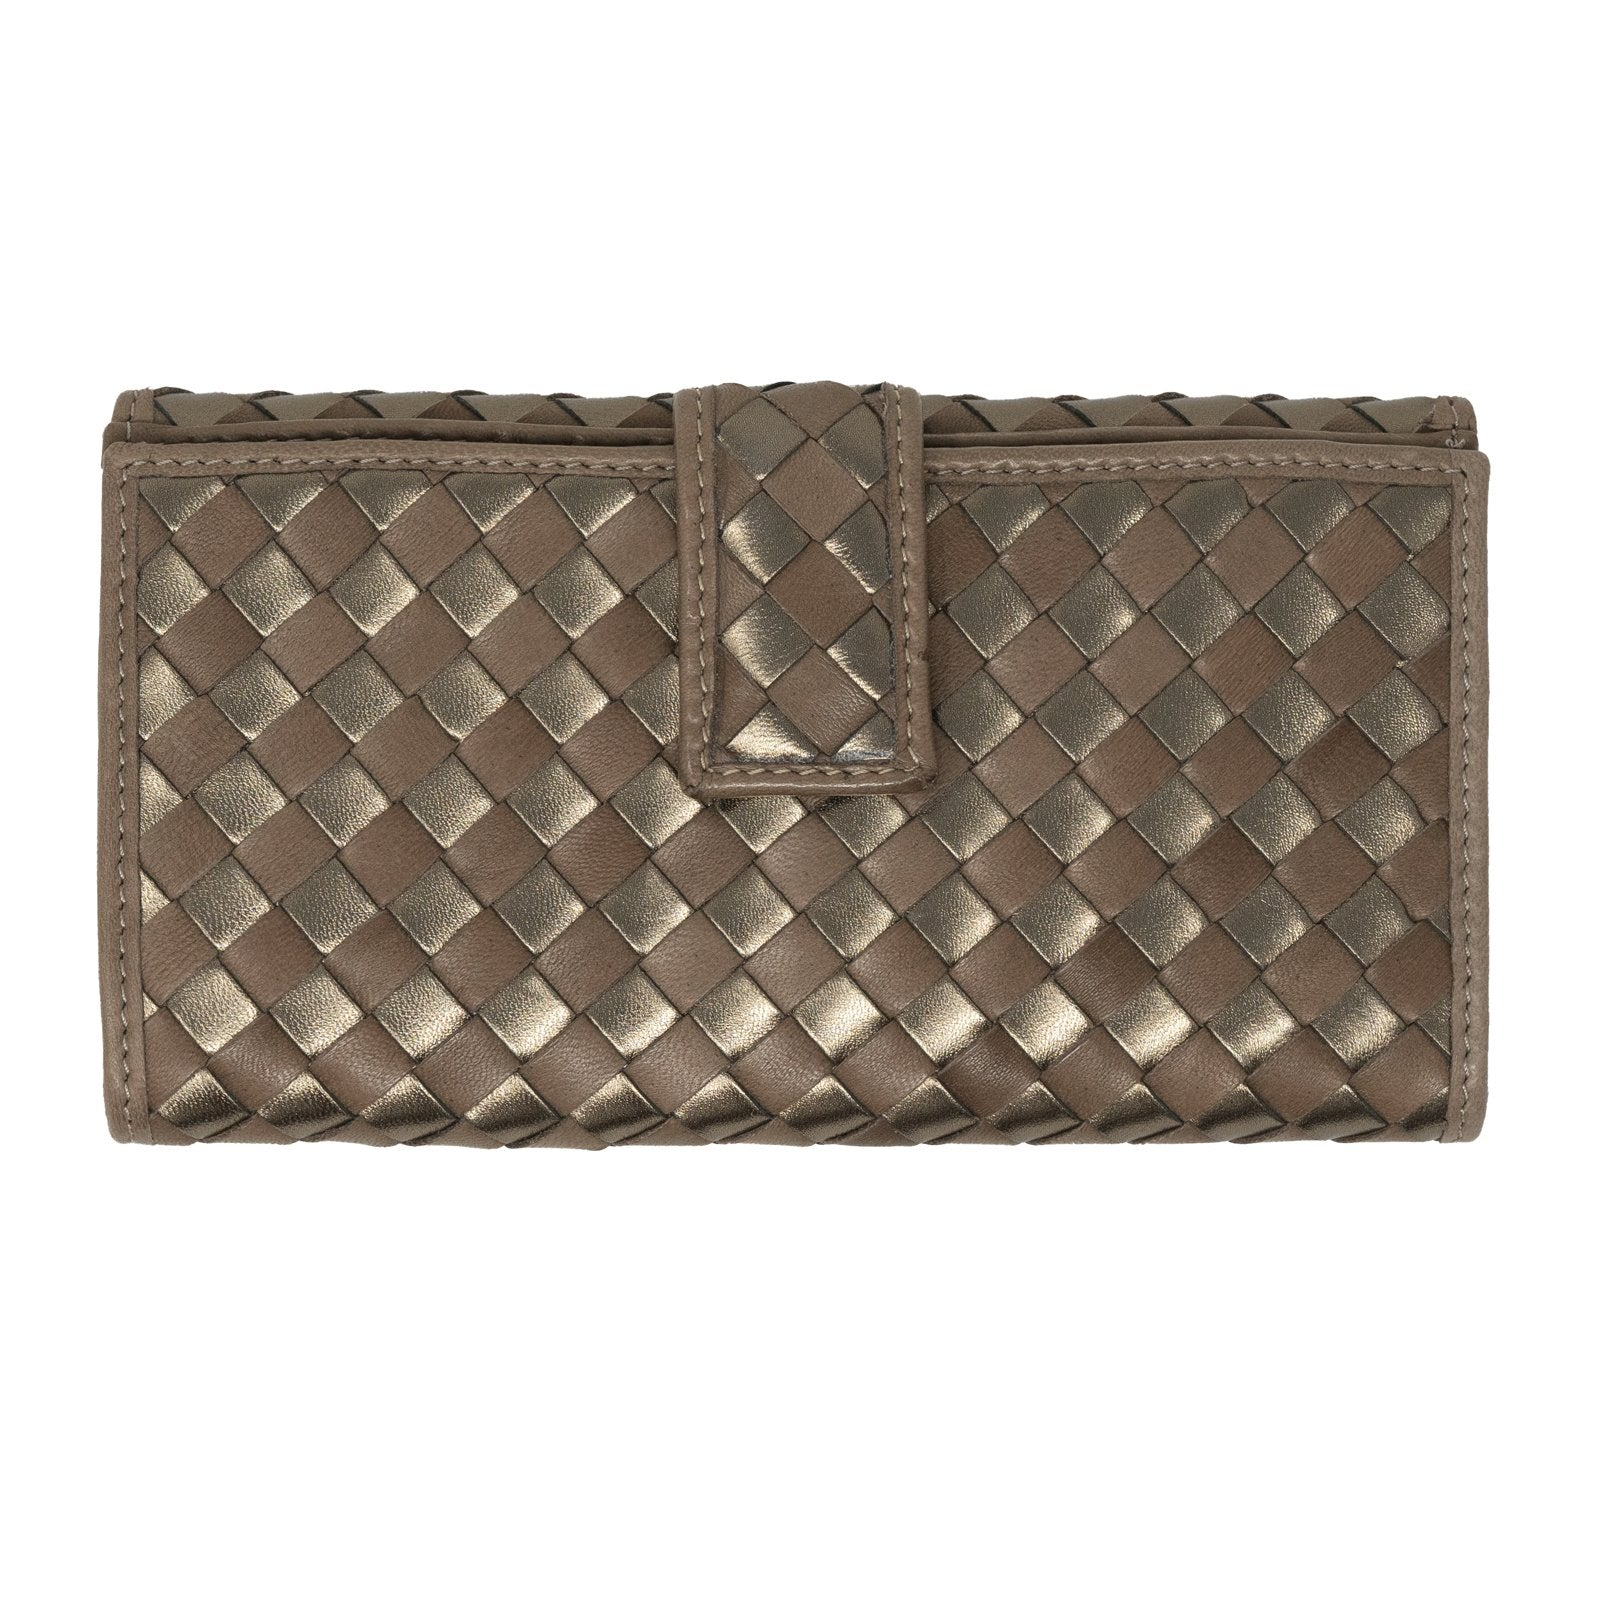 Women Intrecciato Leather Wallet in Taupe and Bronze - Jennifer Tattanelli